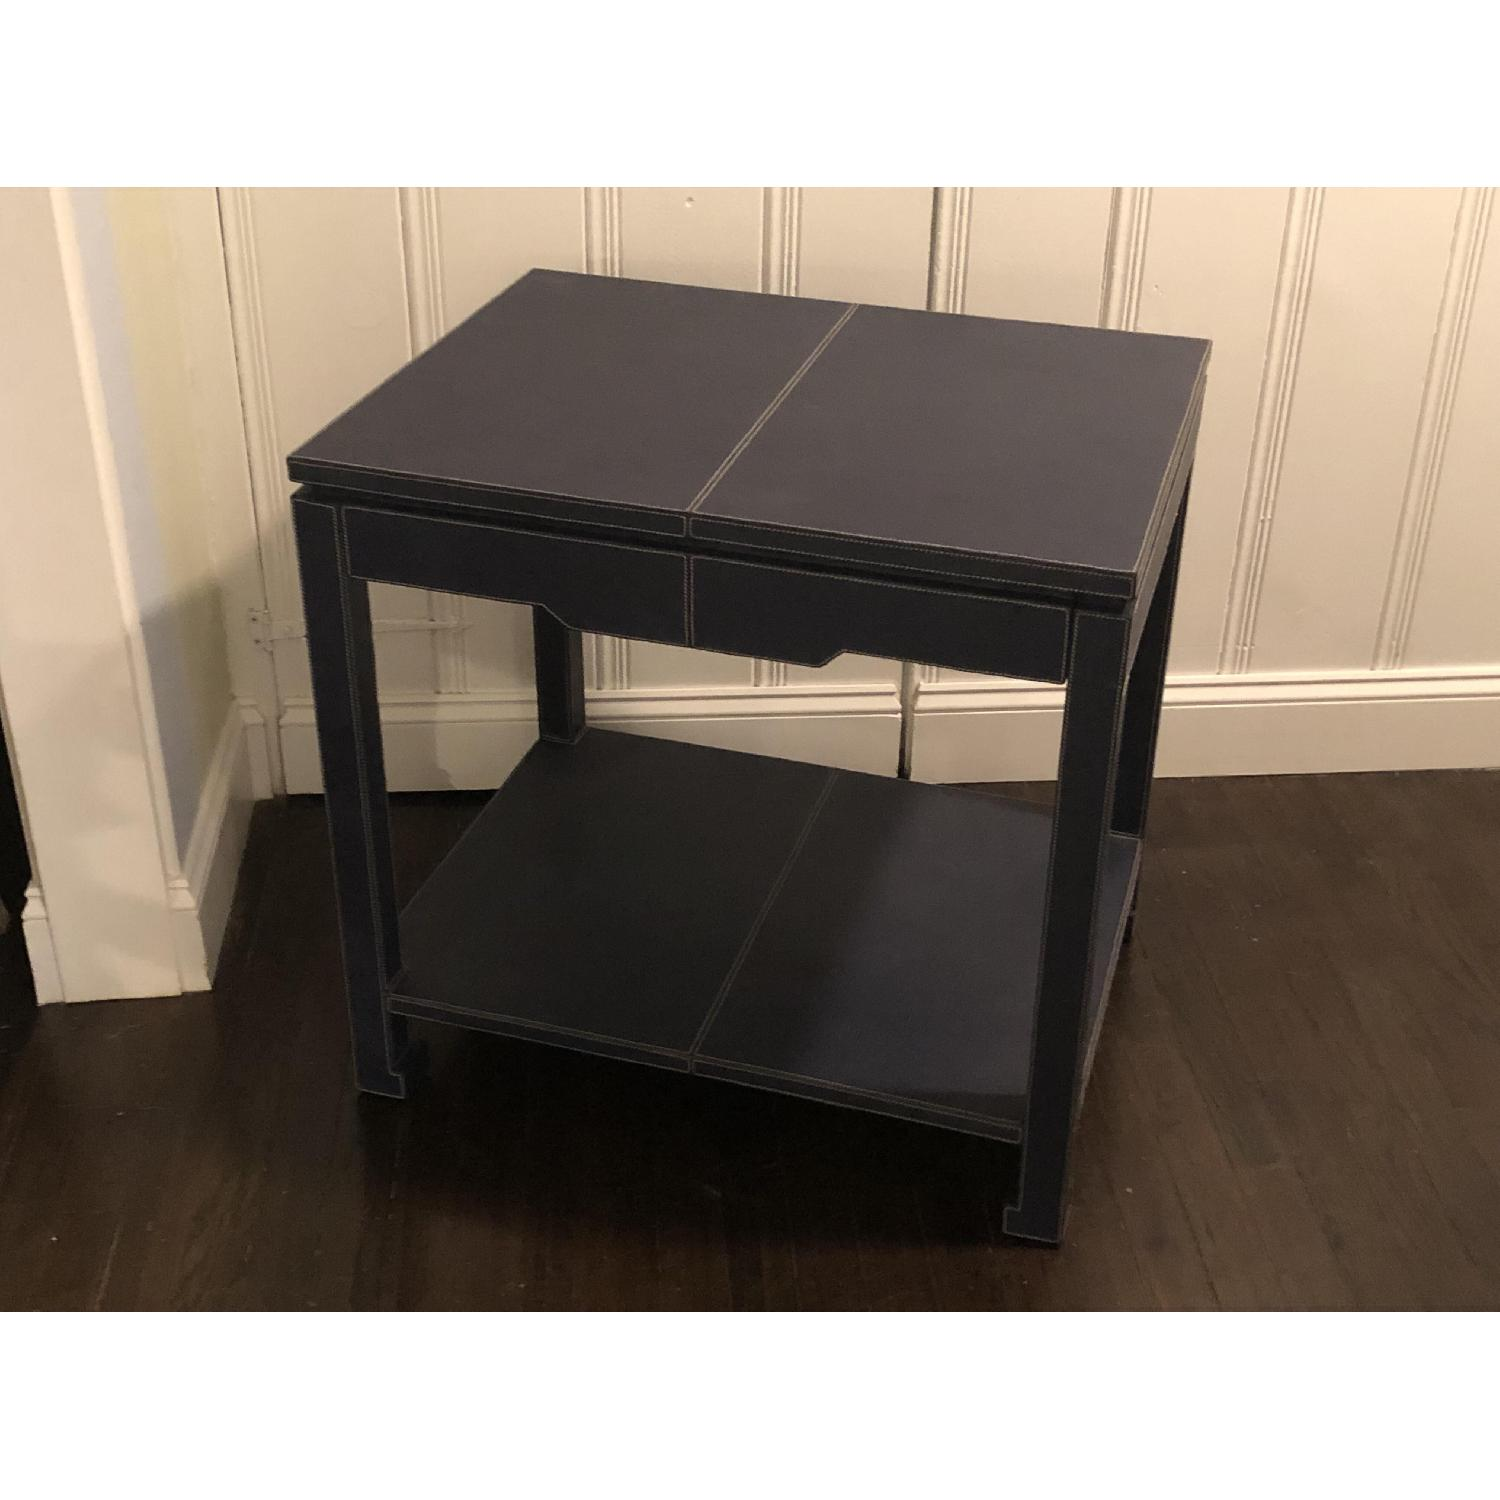 Jonathan Adler Mid-Century Modern Blue Leather Side Table - image-3